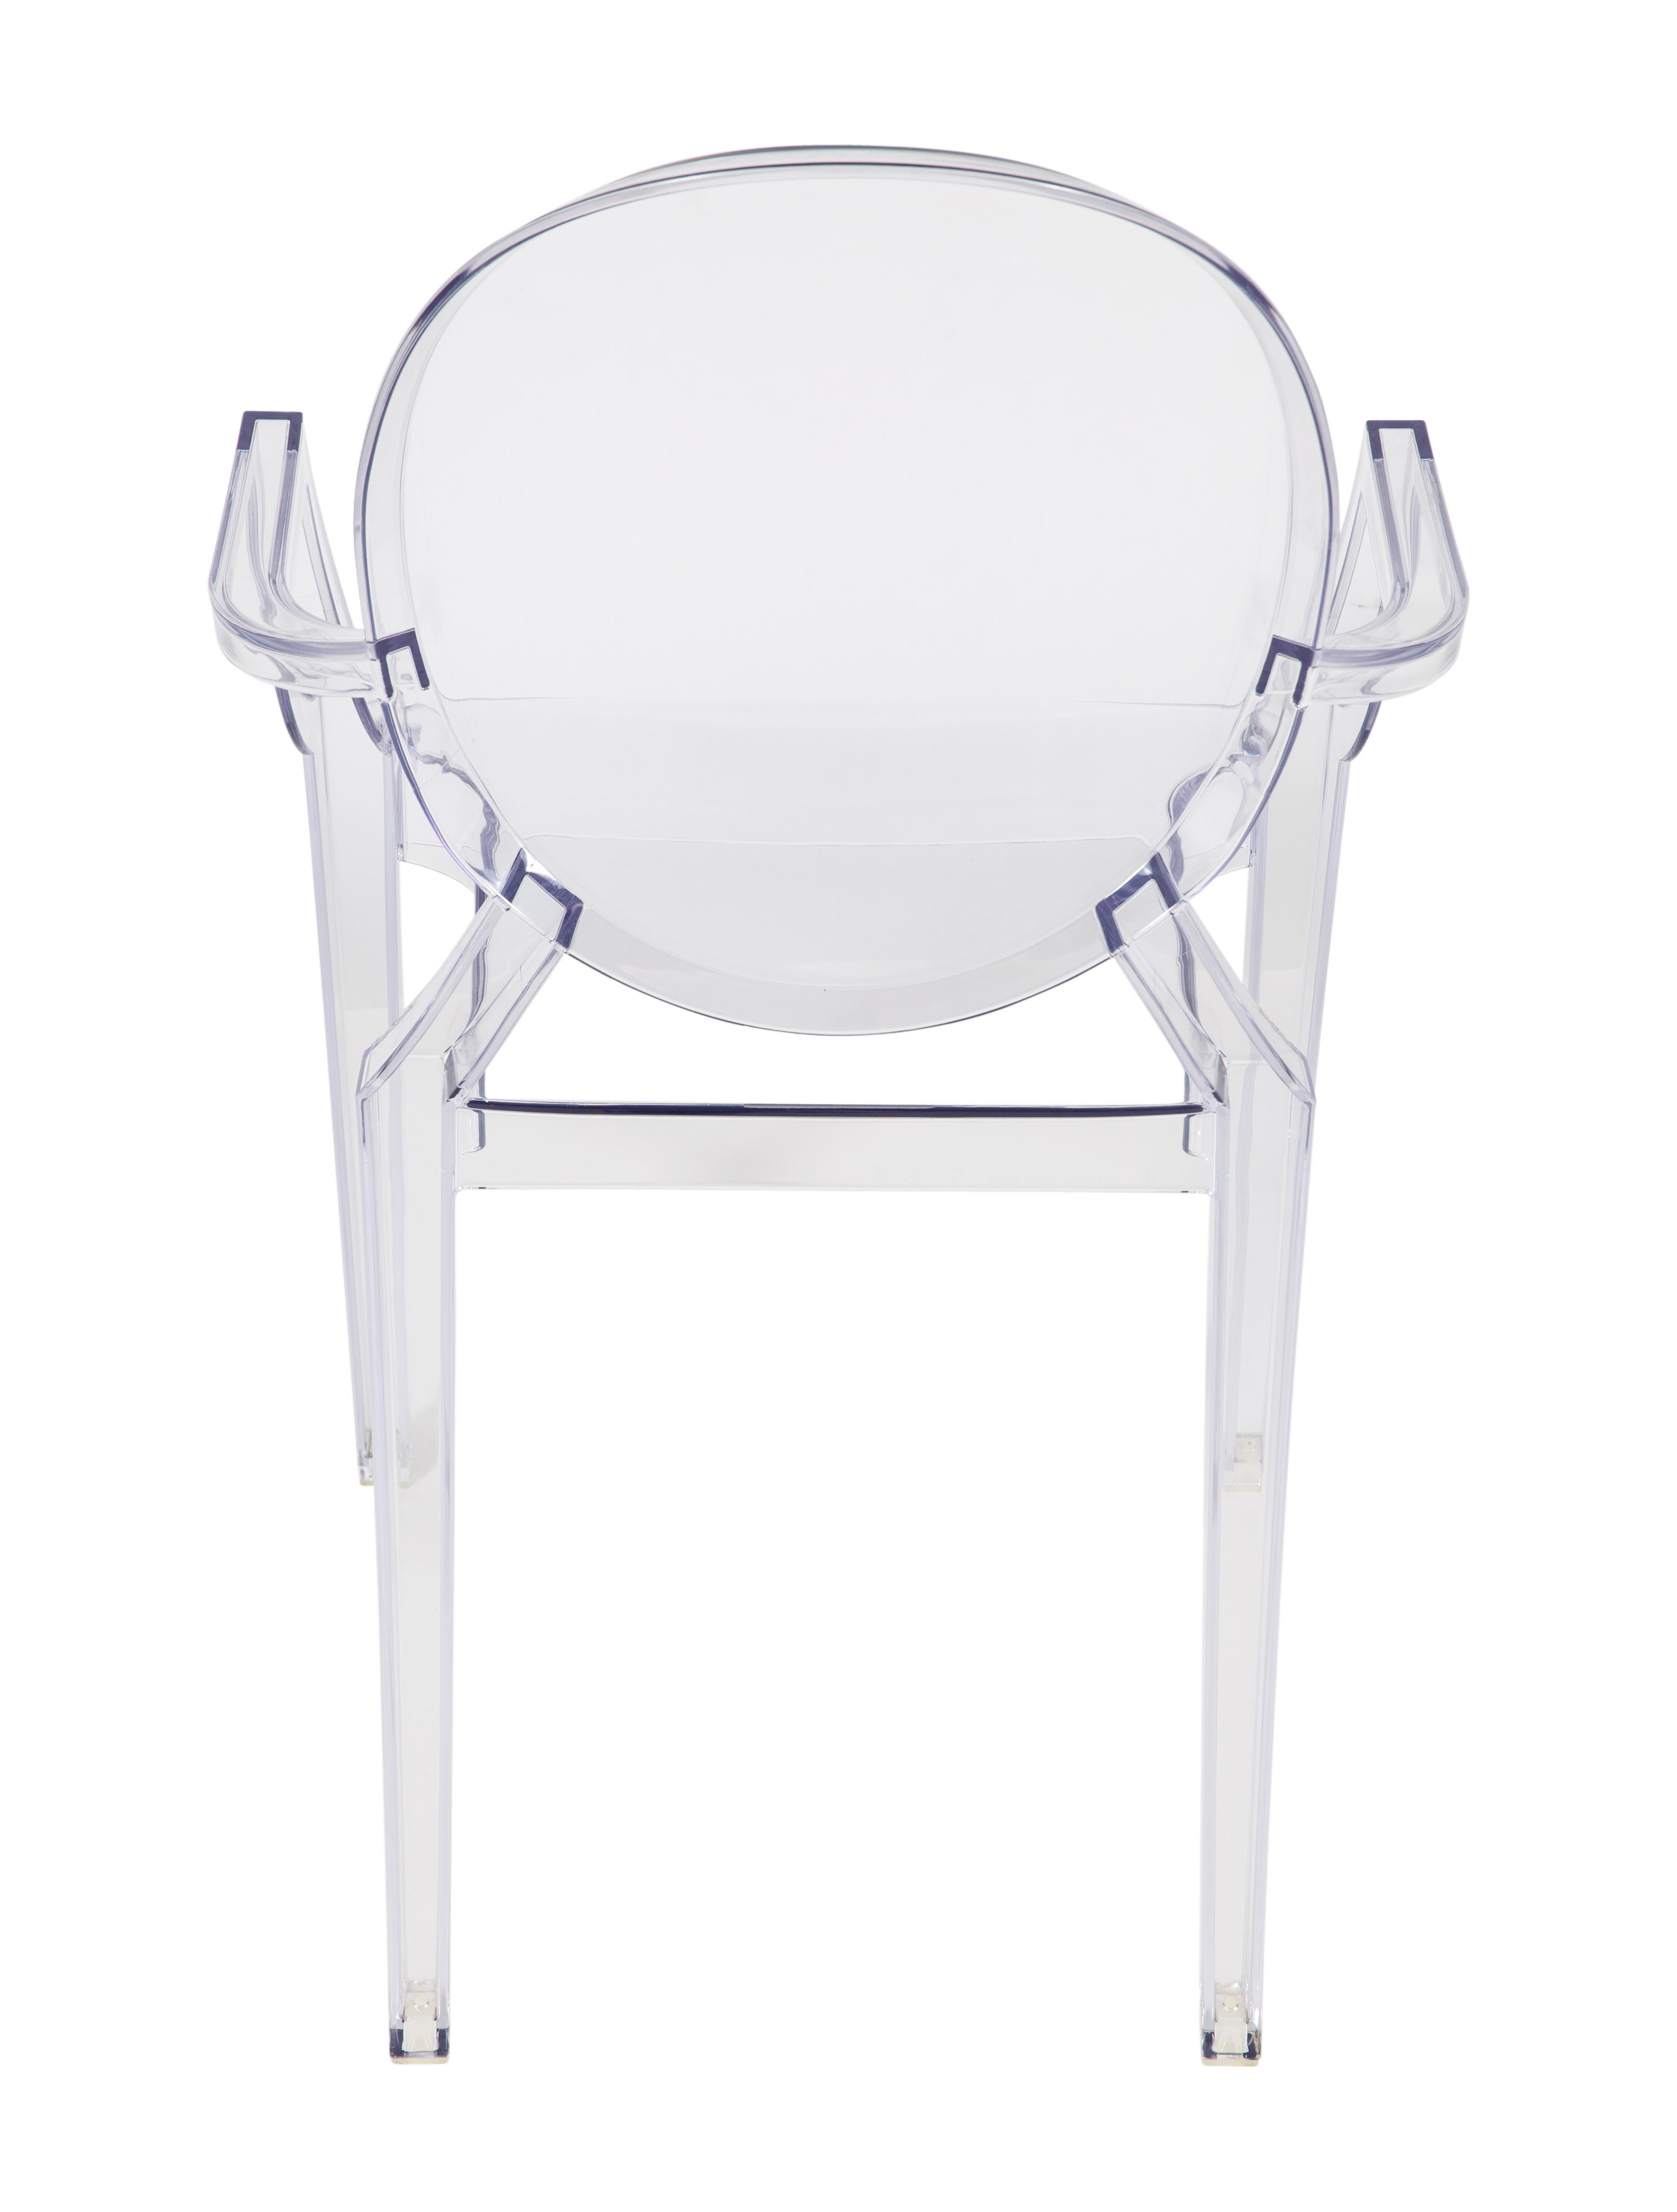 chaise inspired meilleur de starck with louis ghost affordable philippe transparente chair of by clear